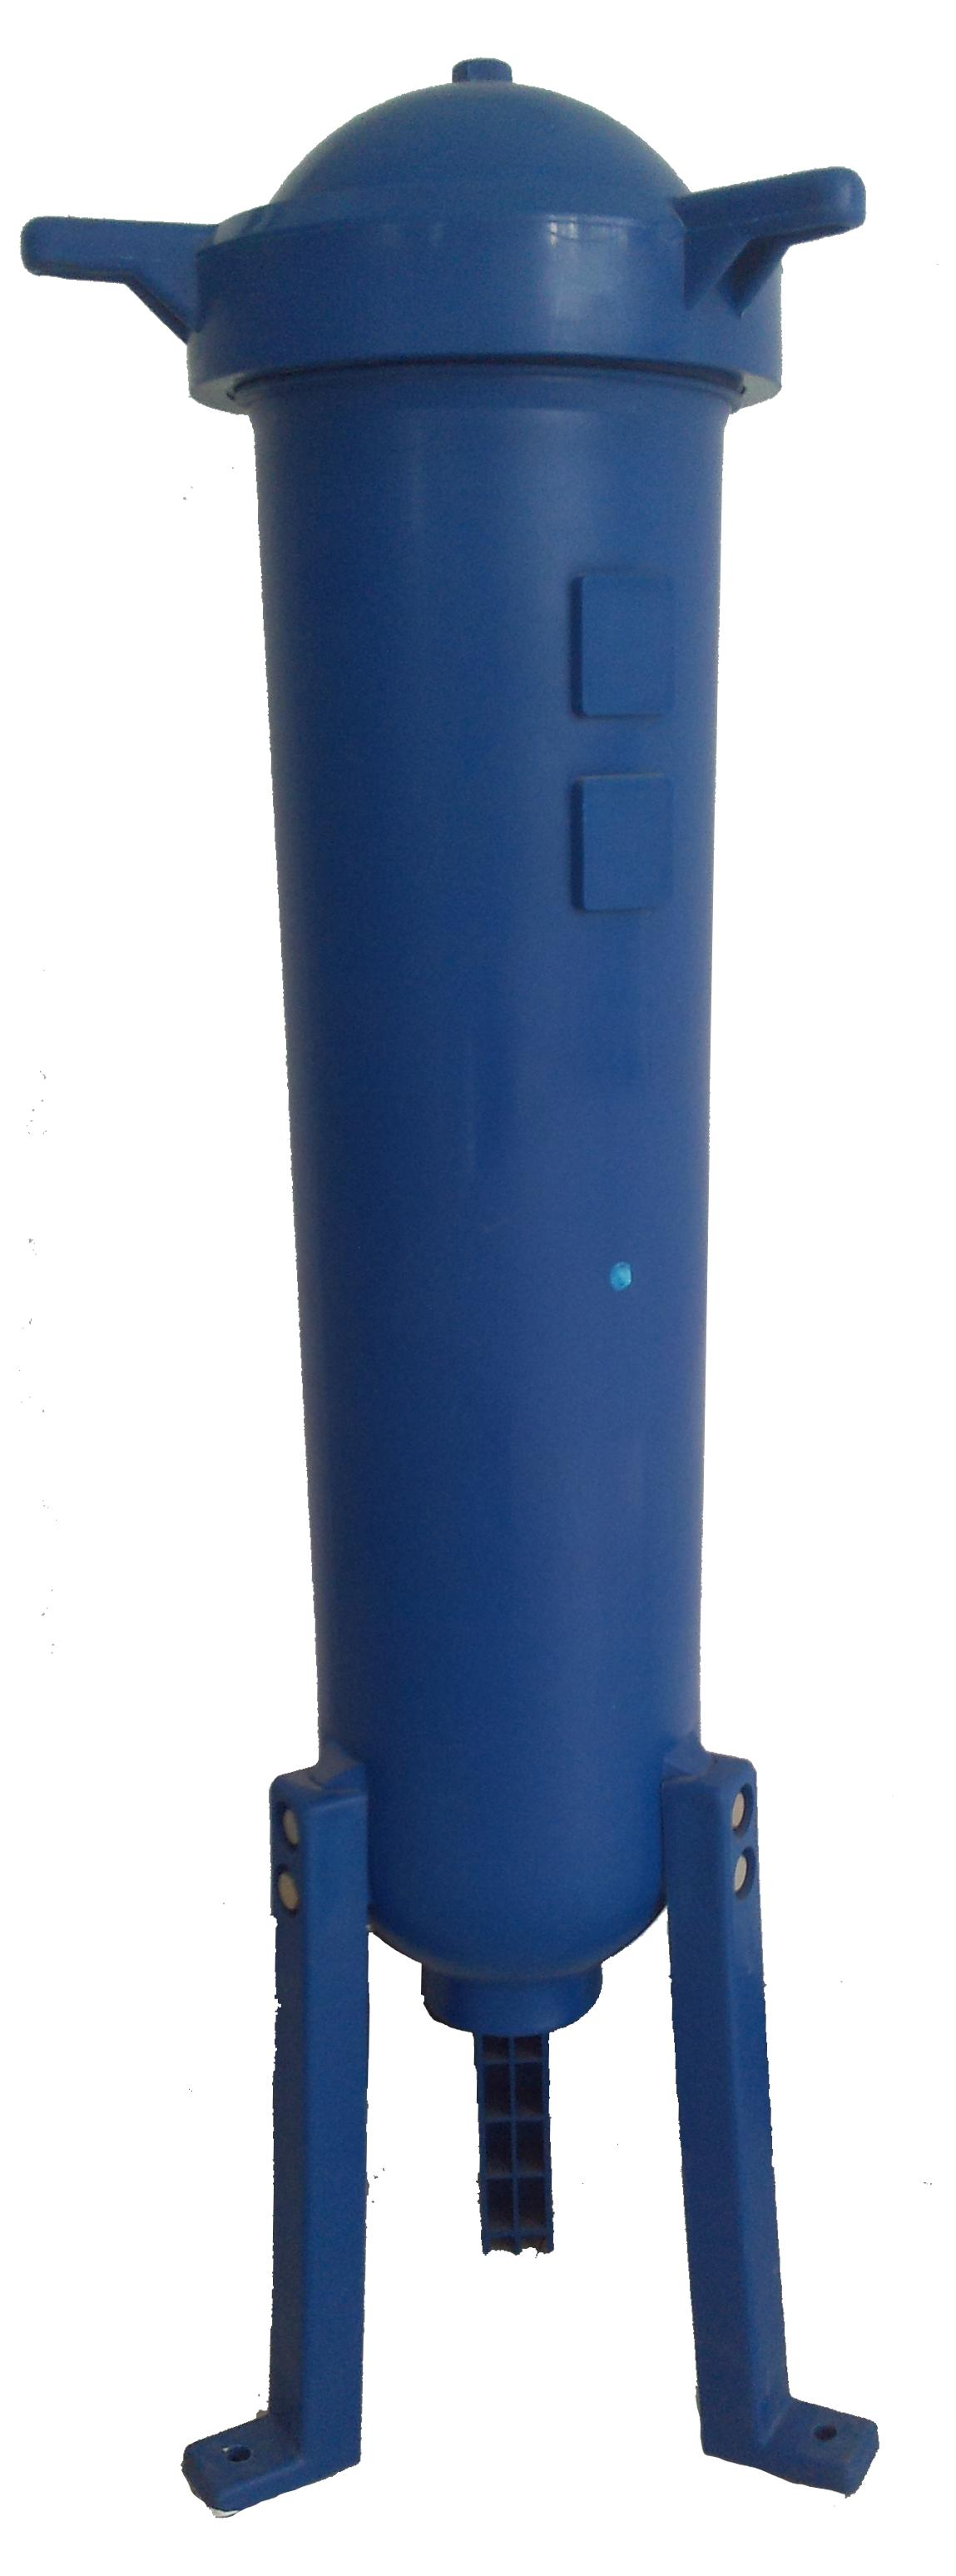 Bình lọc túi Polypropylene Bag Filter Vessel- PF series